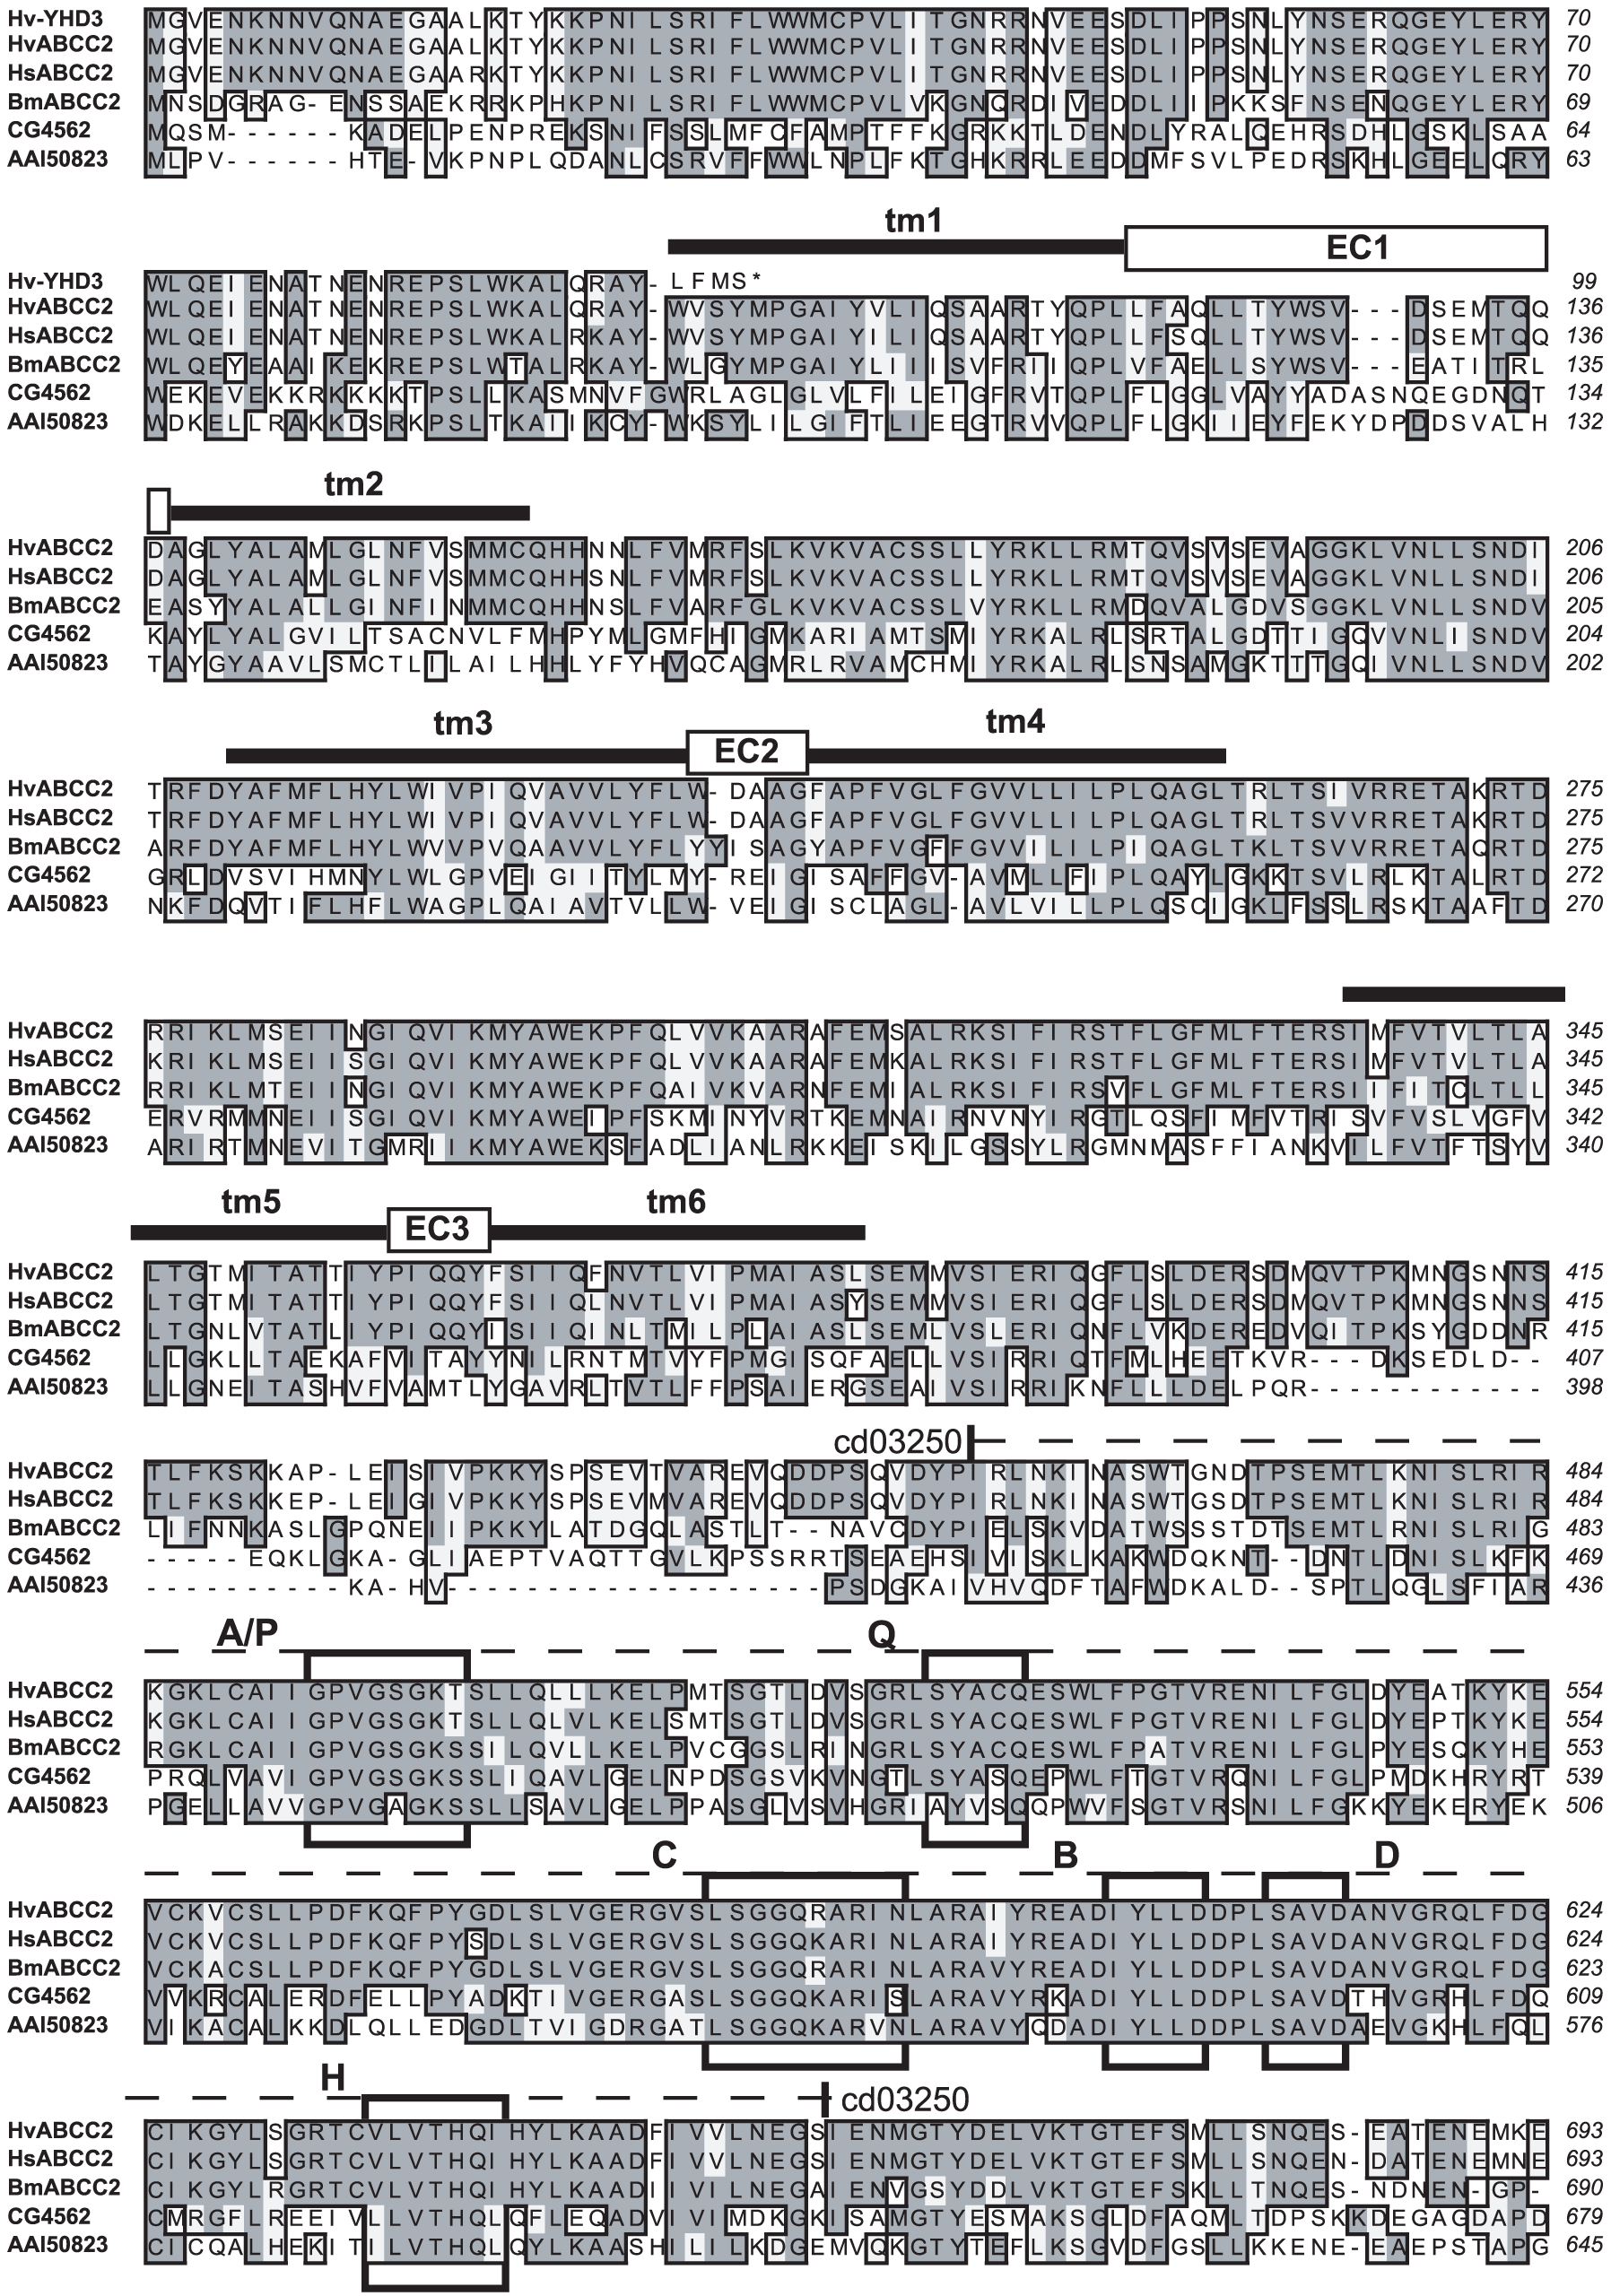 Sequence alignment of ABCC proteins from Lepidoptera, <i>Drosophila</i>, and mouse, Part 1.